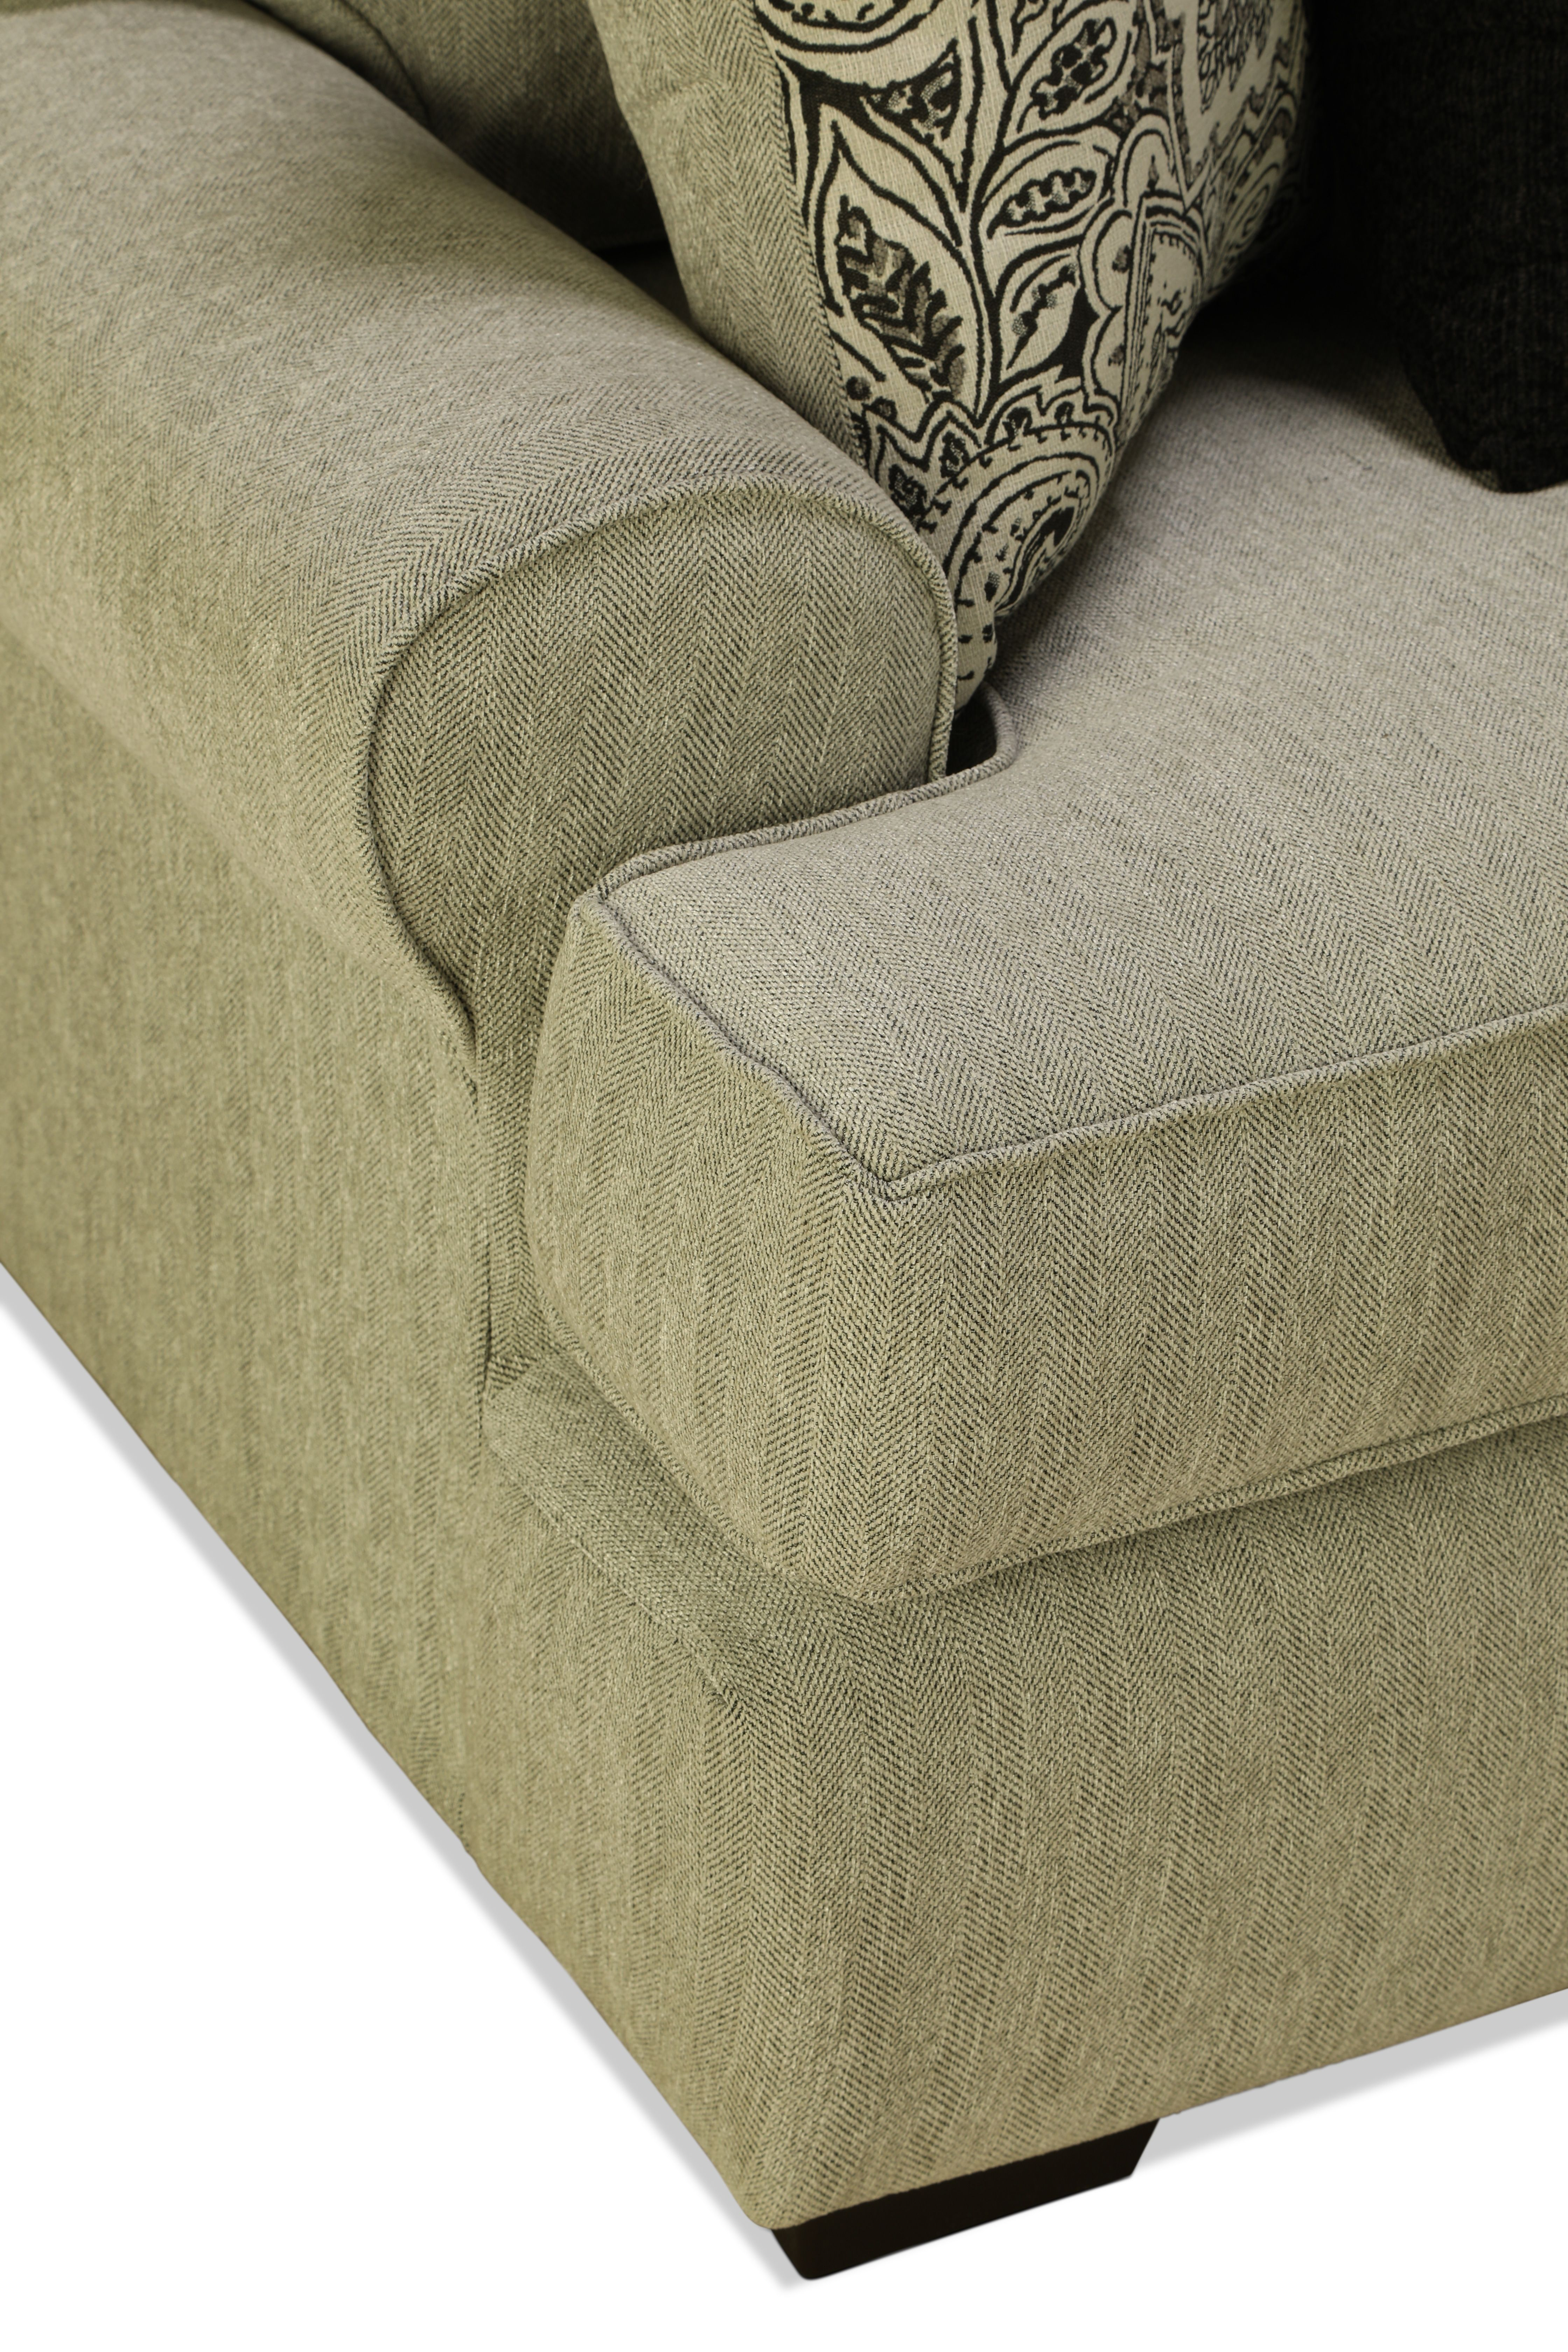 Manhattan 3pc Sectional Right Facing Levin Furniture Living Room Cabinets Living Furniture